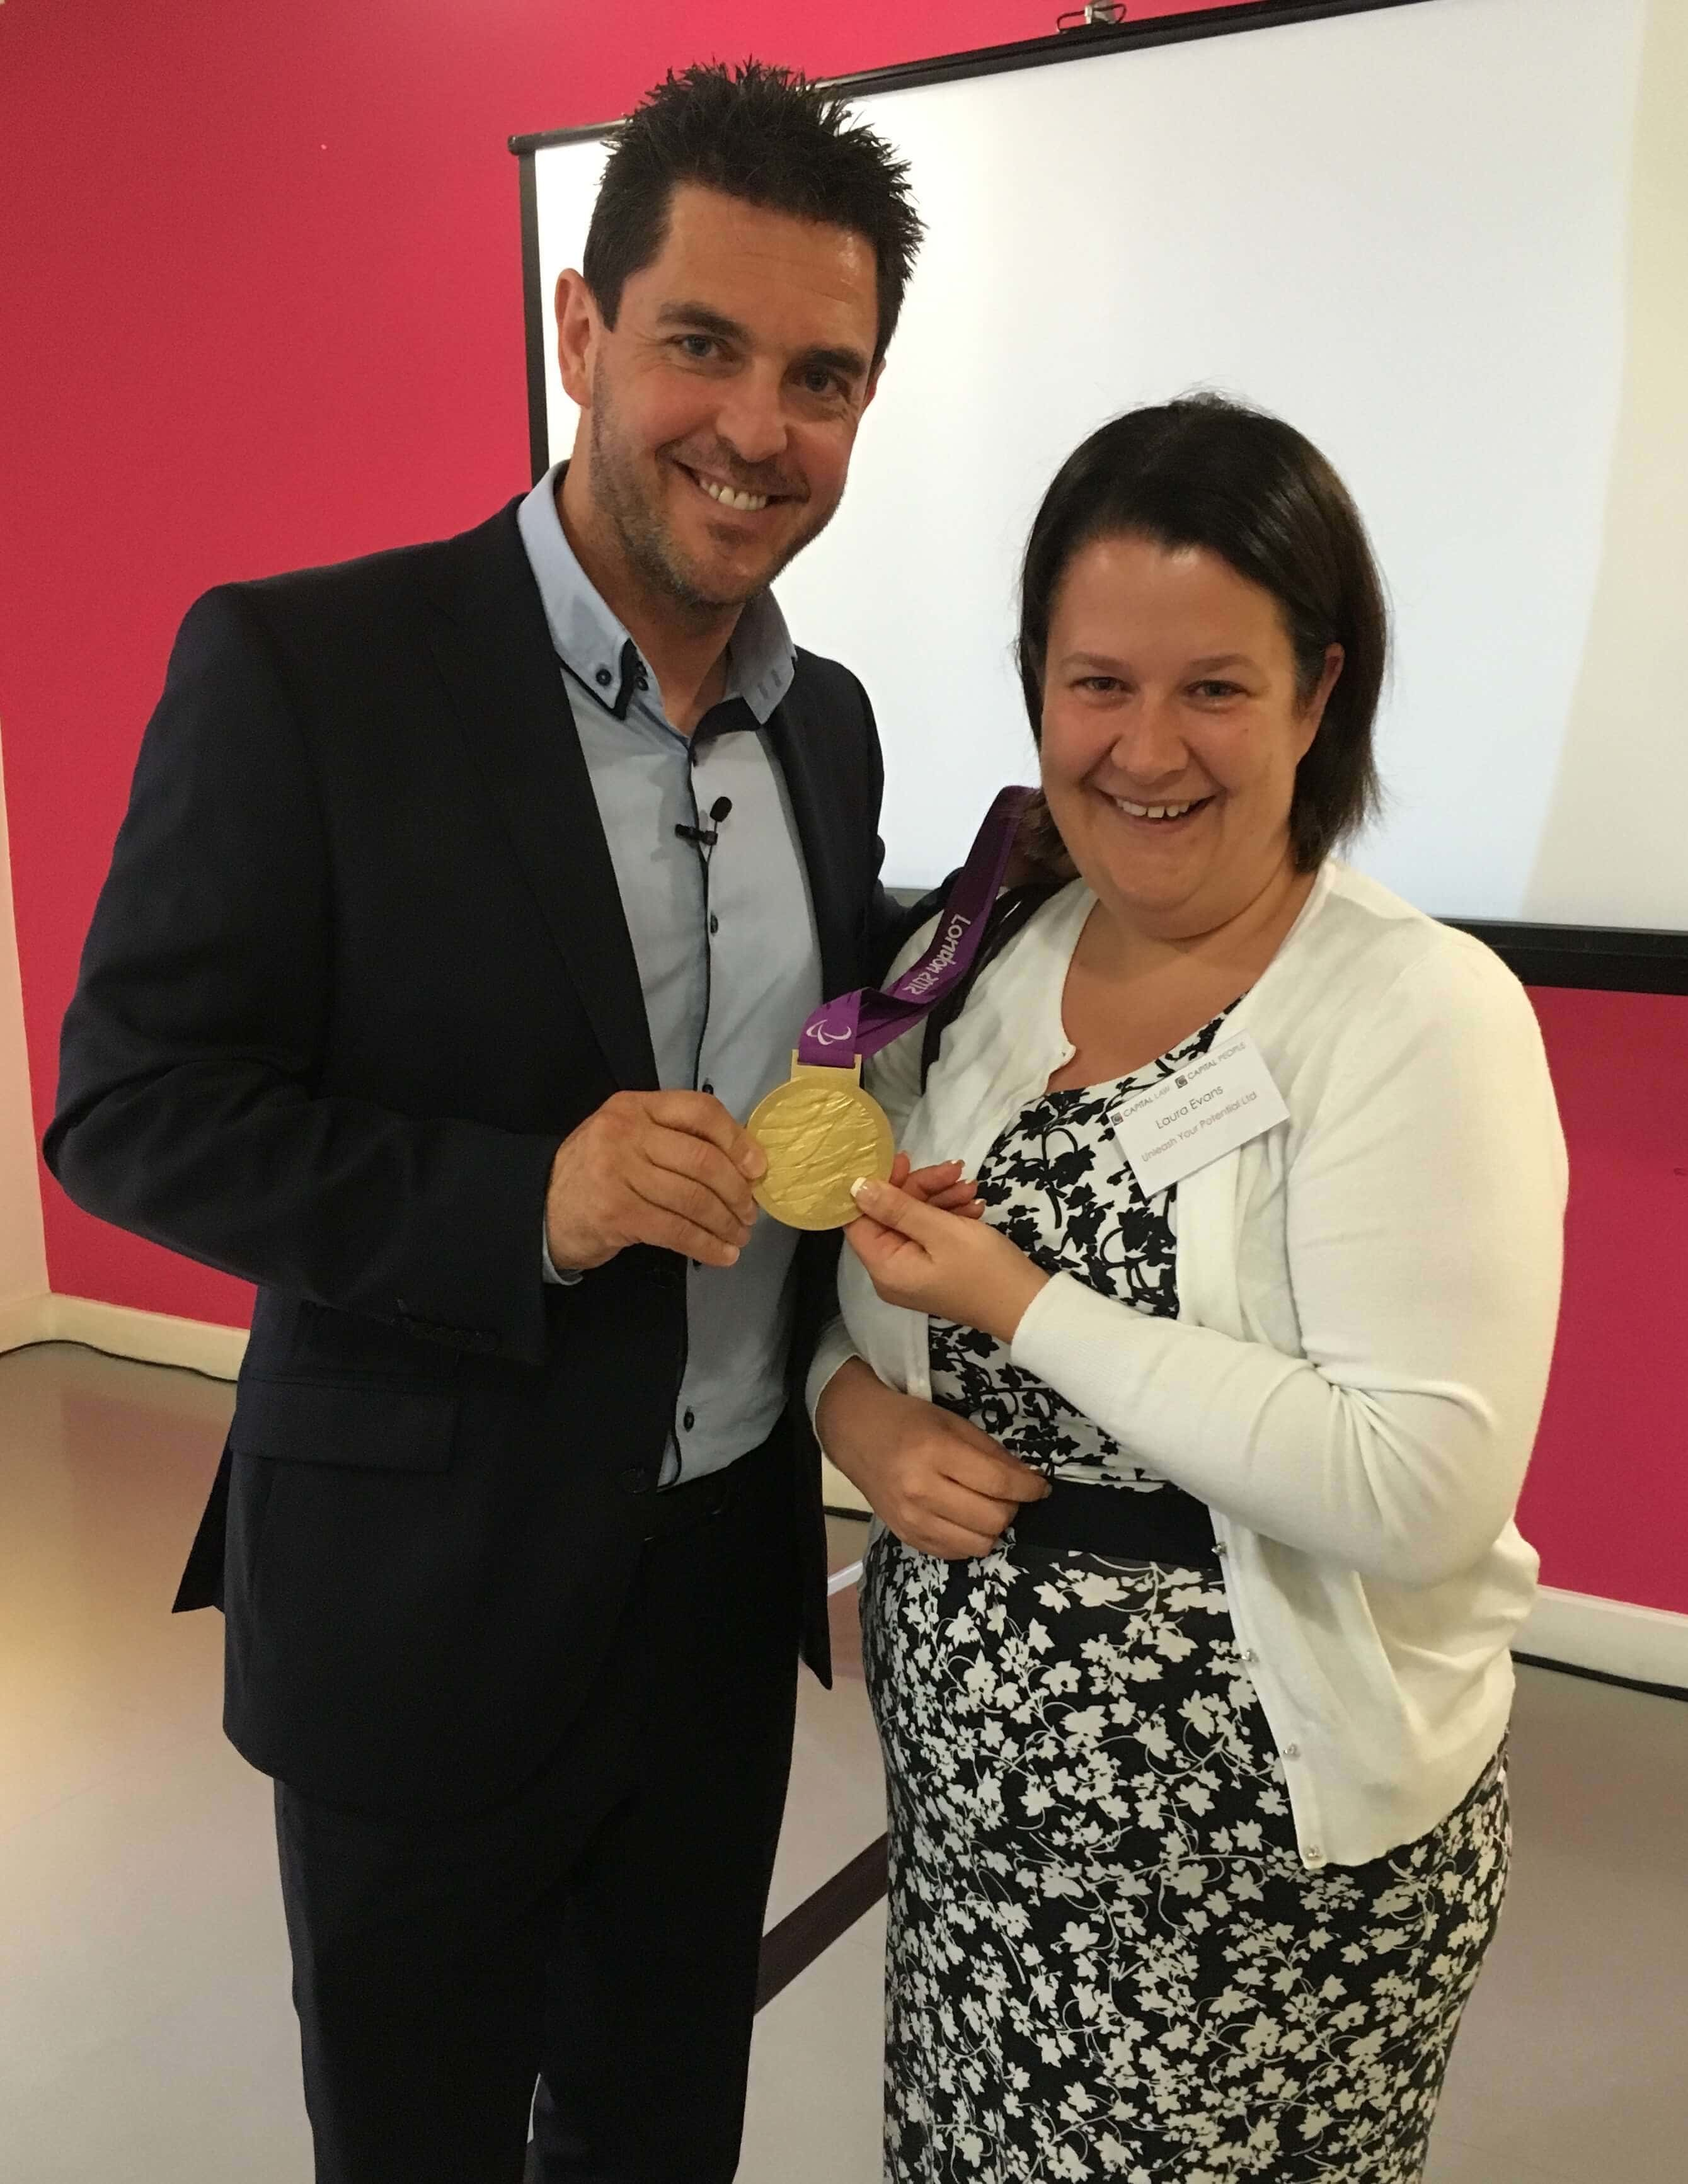 Winners never quit on their goal – reflections of an evening with Mark Colbourne MBE